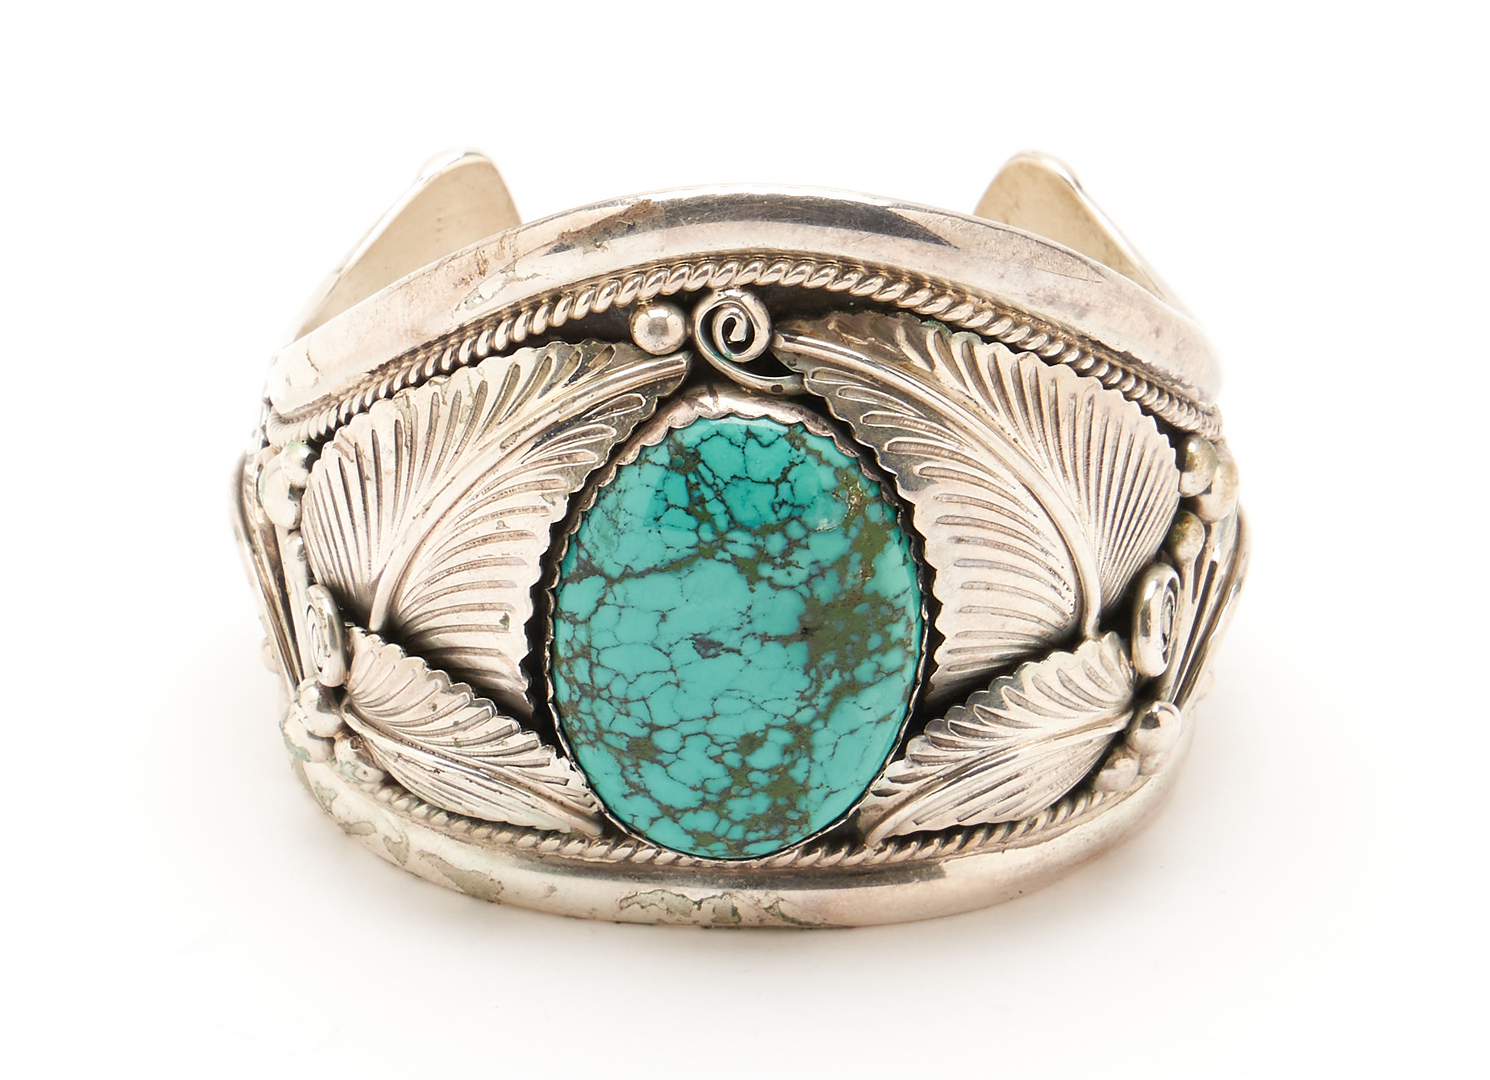 Lot 643: 3 pcs. Native American Turquoise & Silver Jewelry, 2 signed